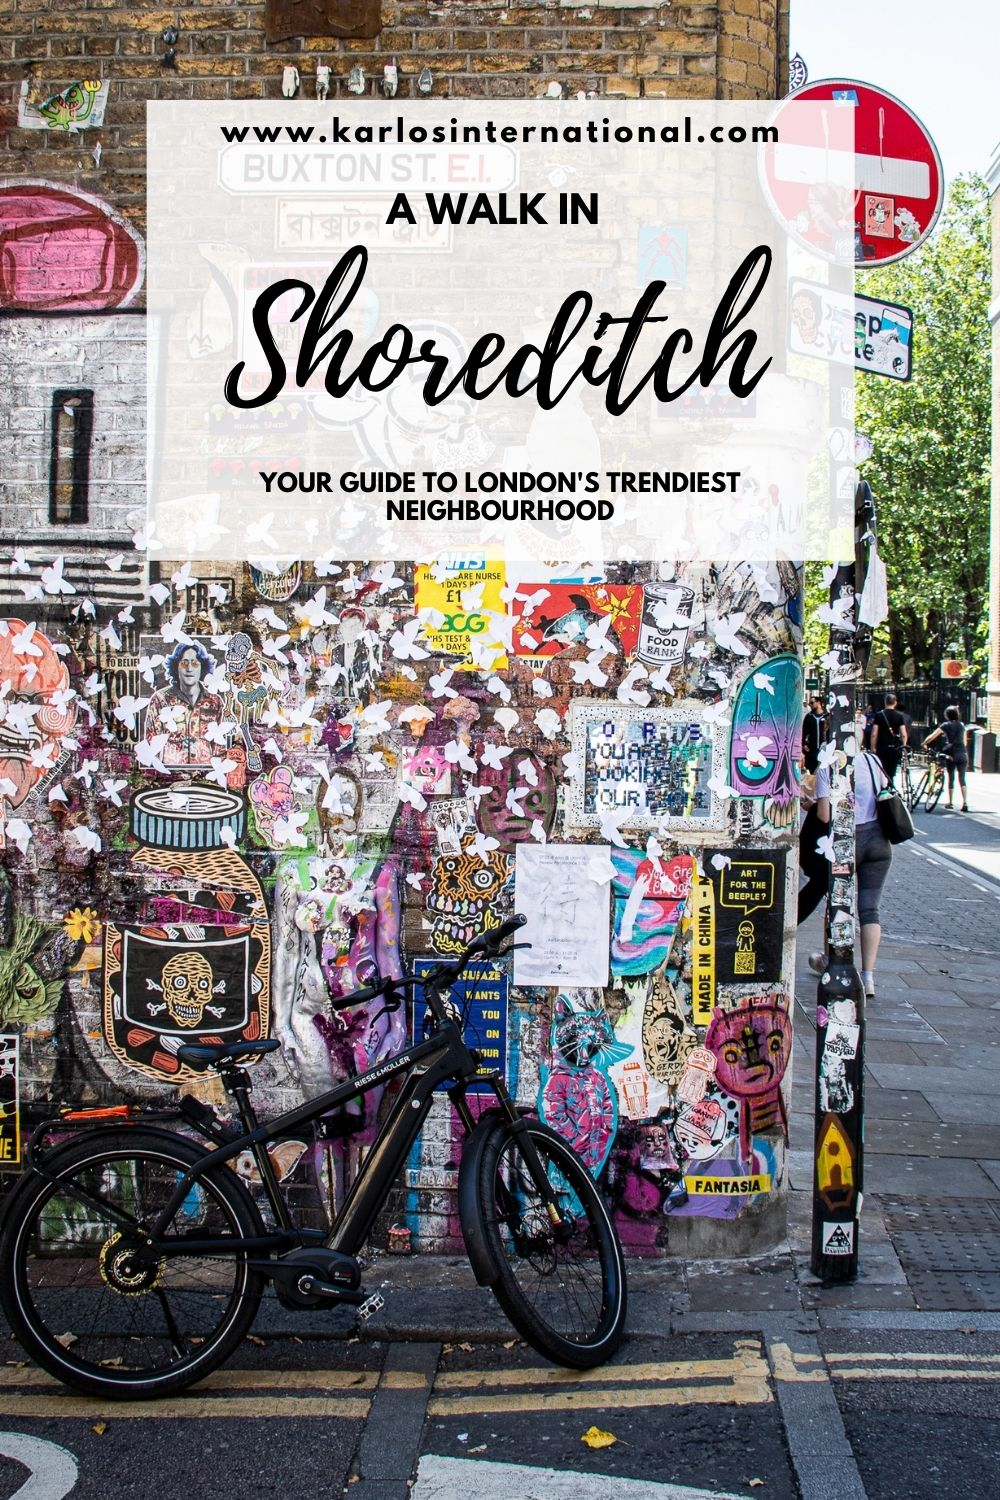 A Walk in Shoreditch - My guide to the best things to do in Shoreditch.